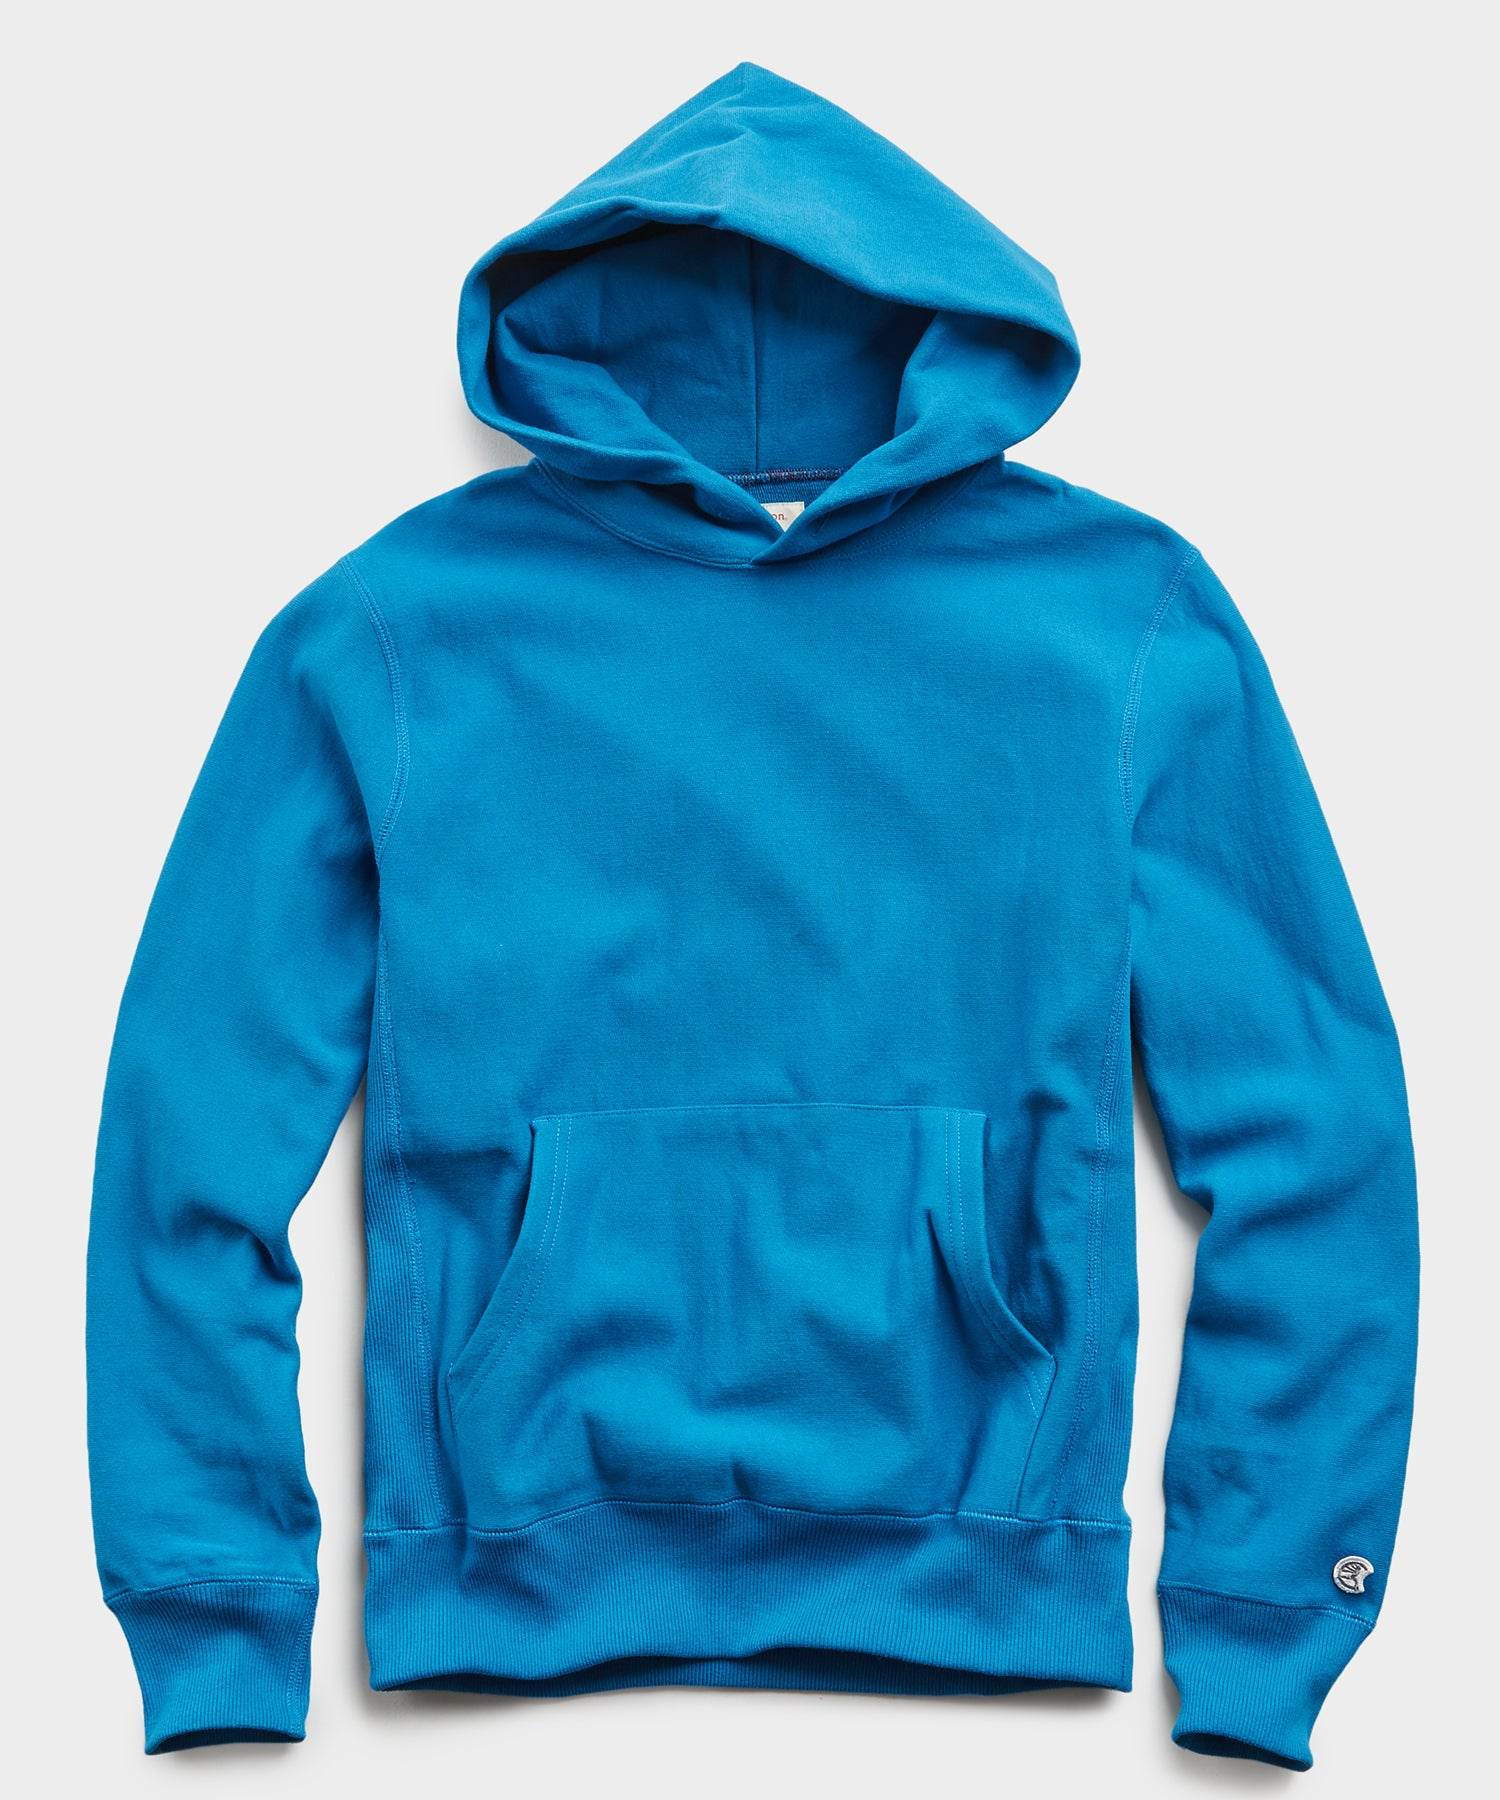 Lightweight Popover Hoodie Sweatshirt in Slate Teal